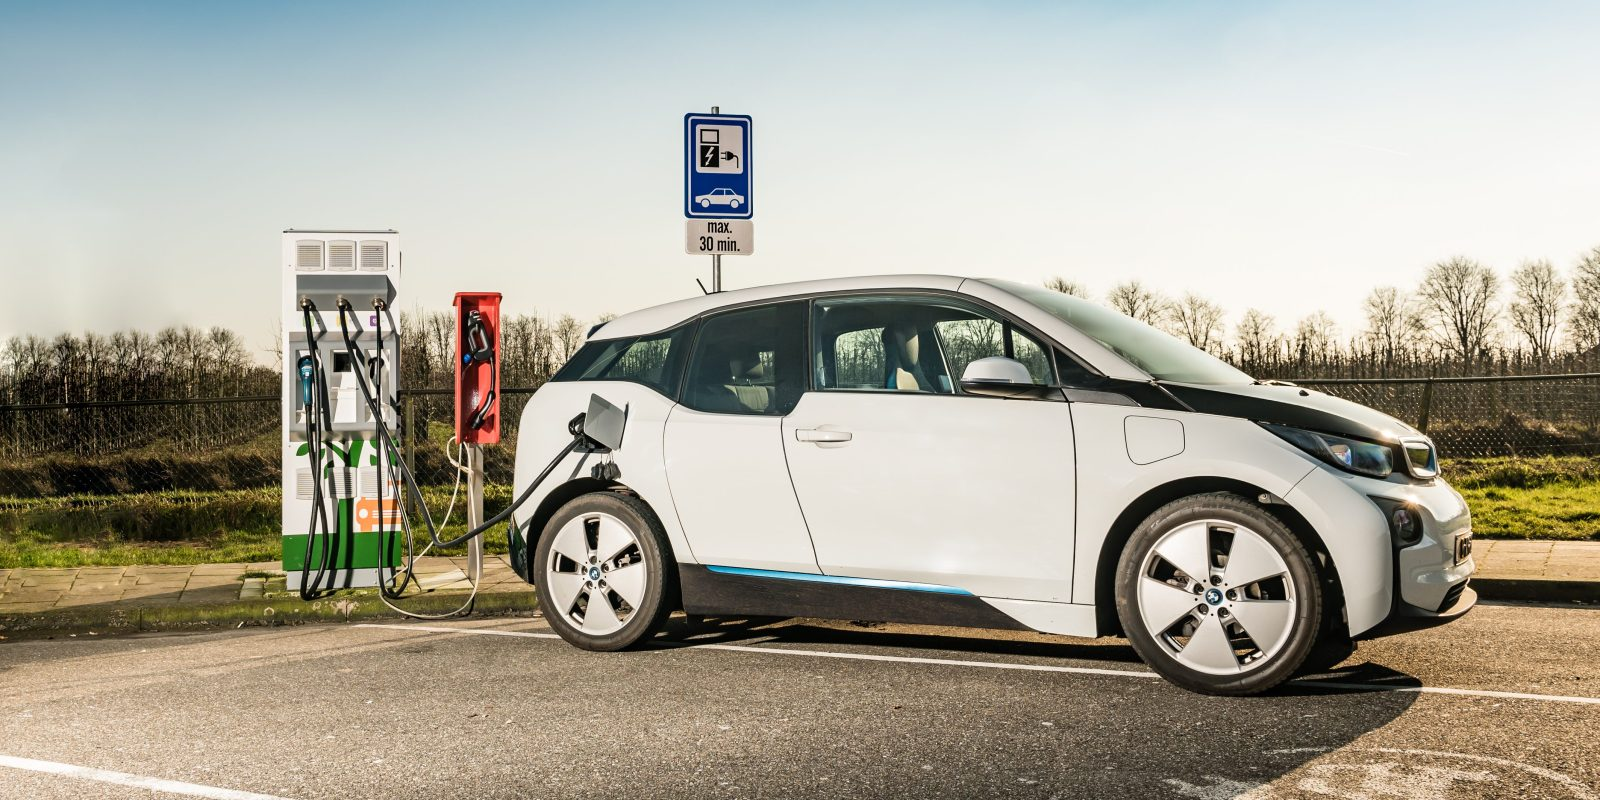 New York City Gets An Extensive Electric Car Charging Program With 50 Fast Stations